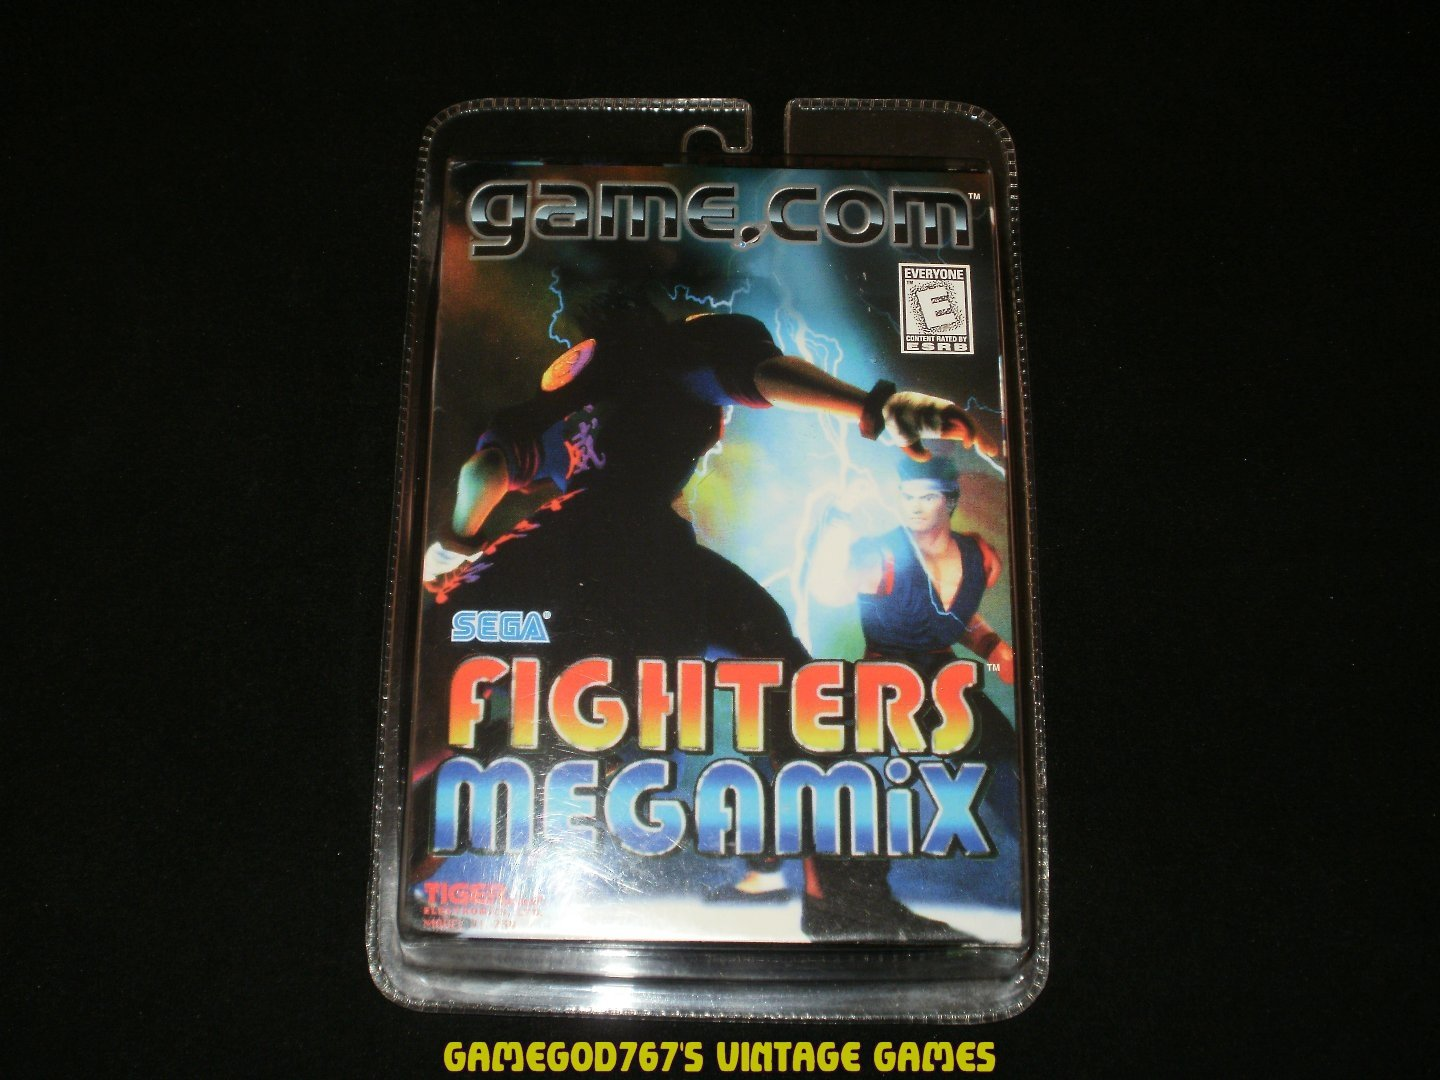 Fighters Megamix - Tiger Game.com  - Brand New Factory Sealed